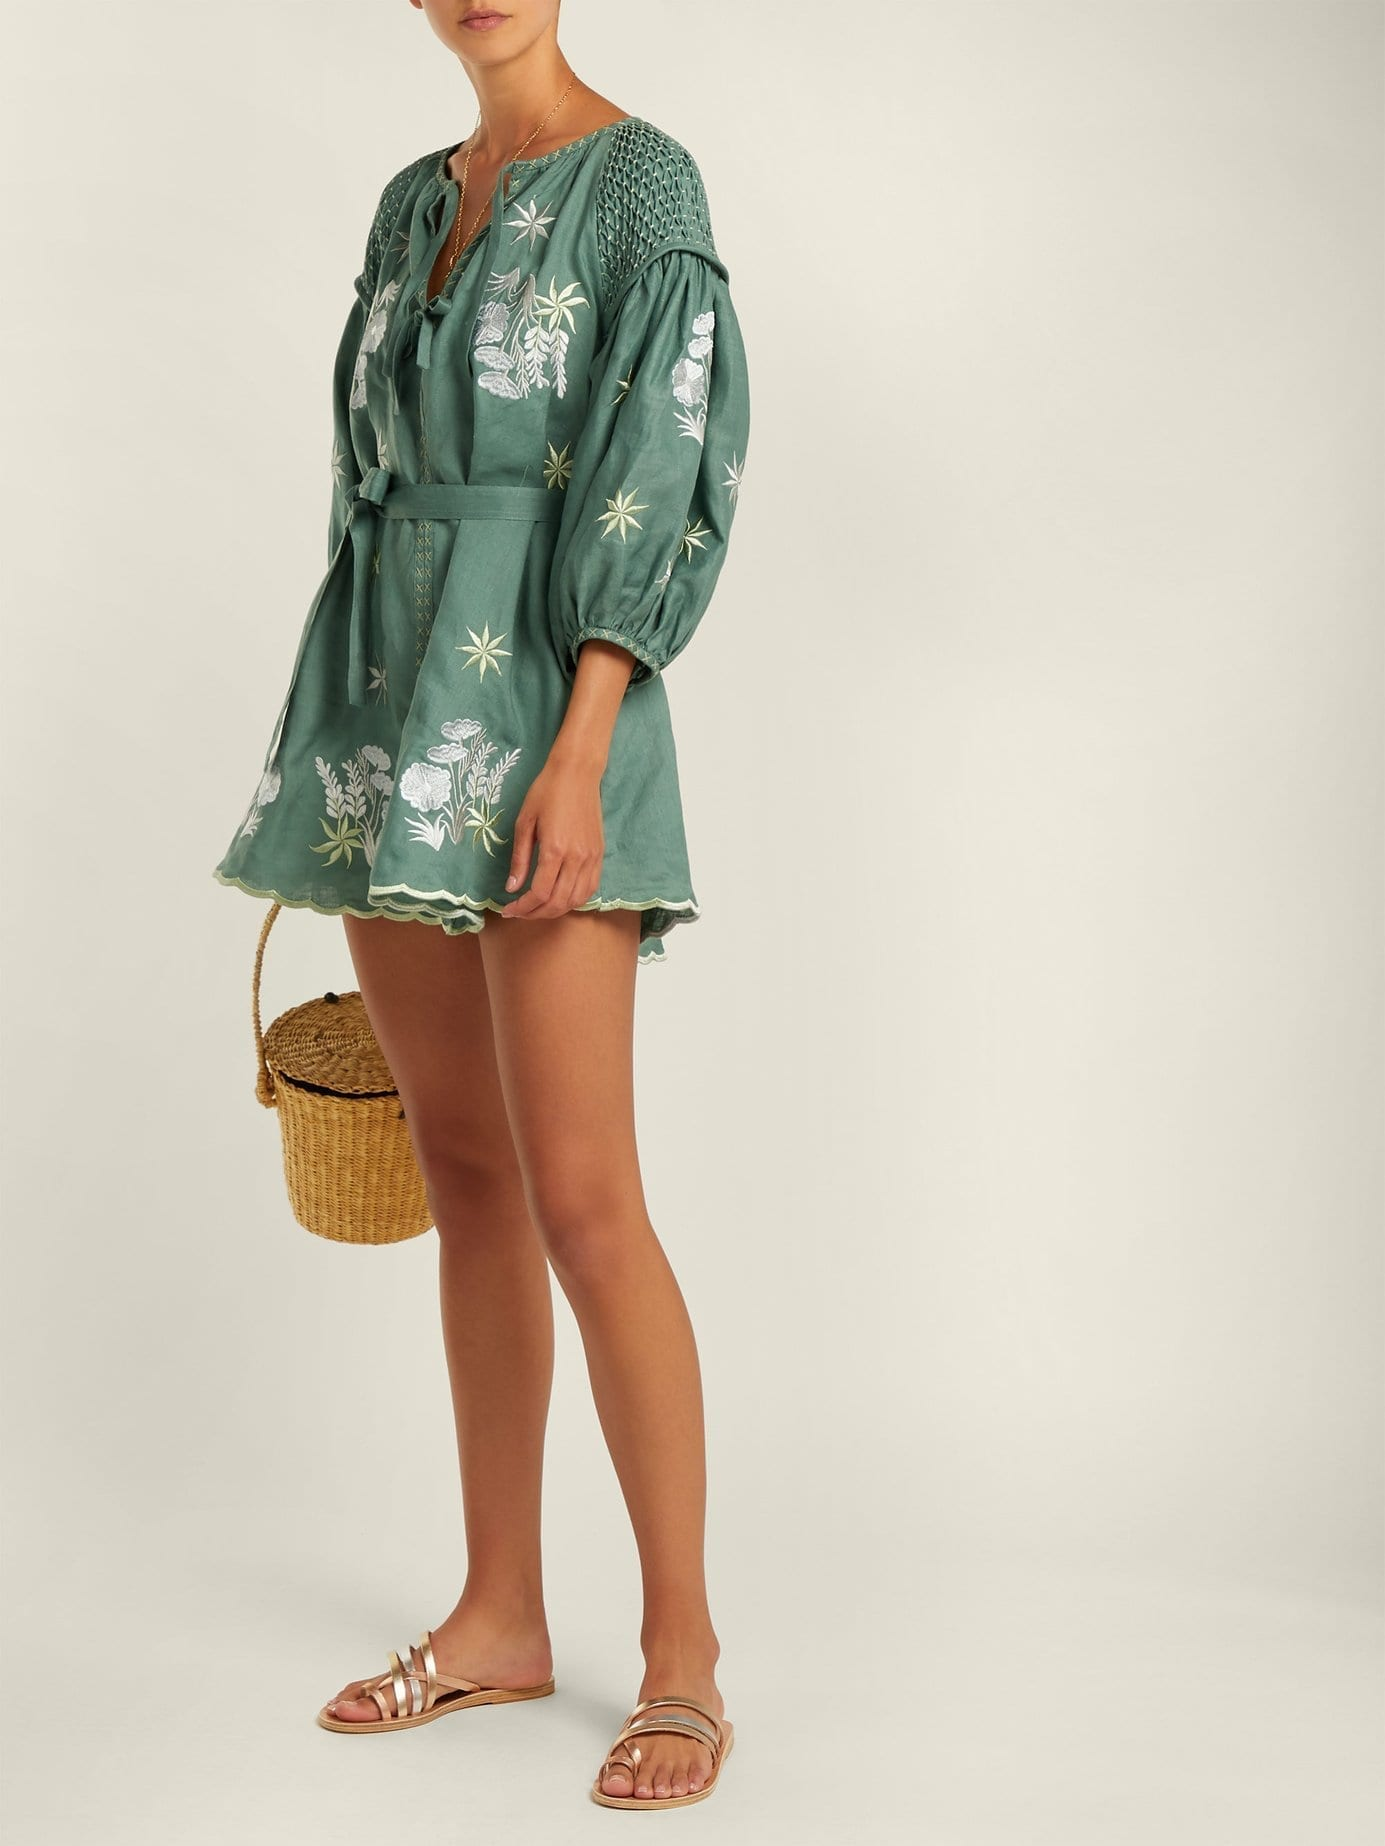 INNIKA CHOO Embroidered Linen Smock Green Dress